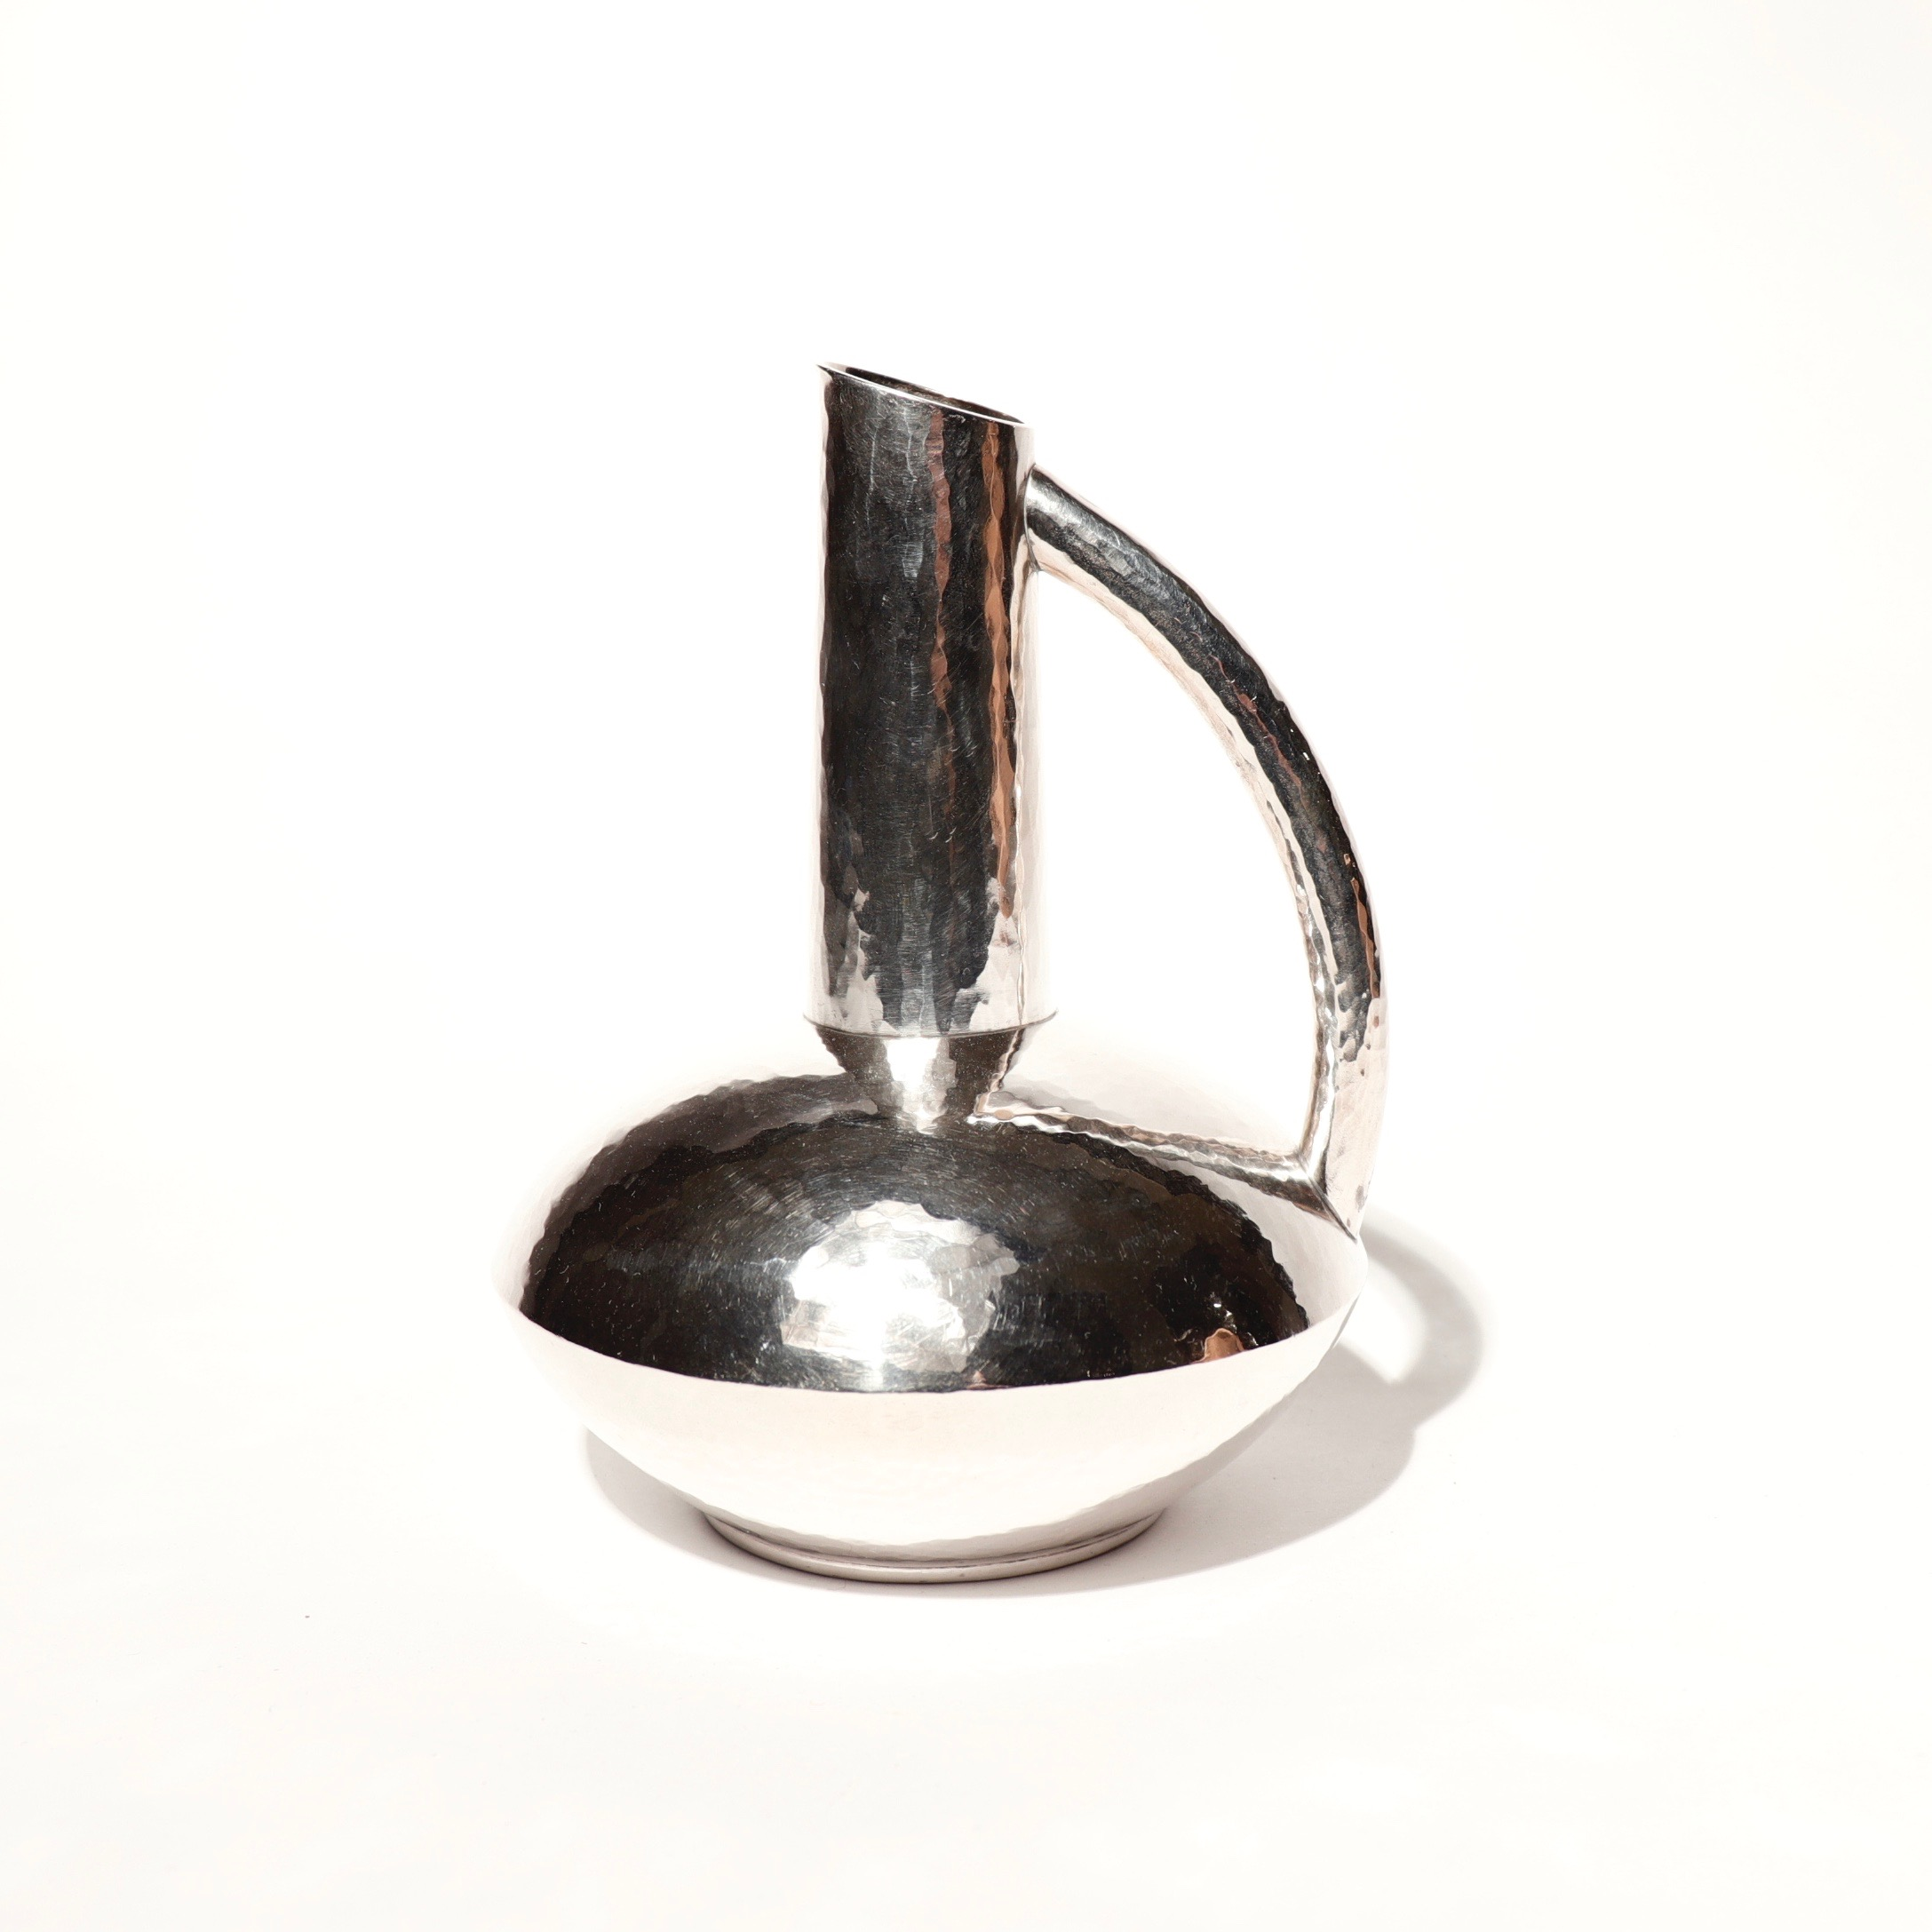 CA90007: Silver Ewer Vase by Seiho